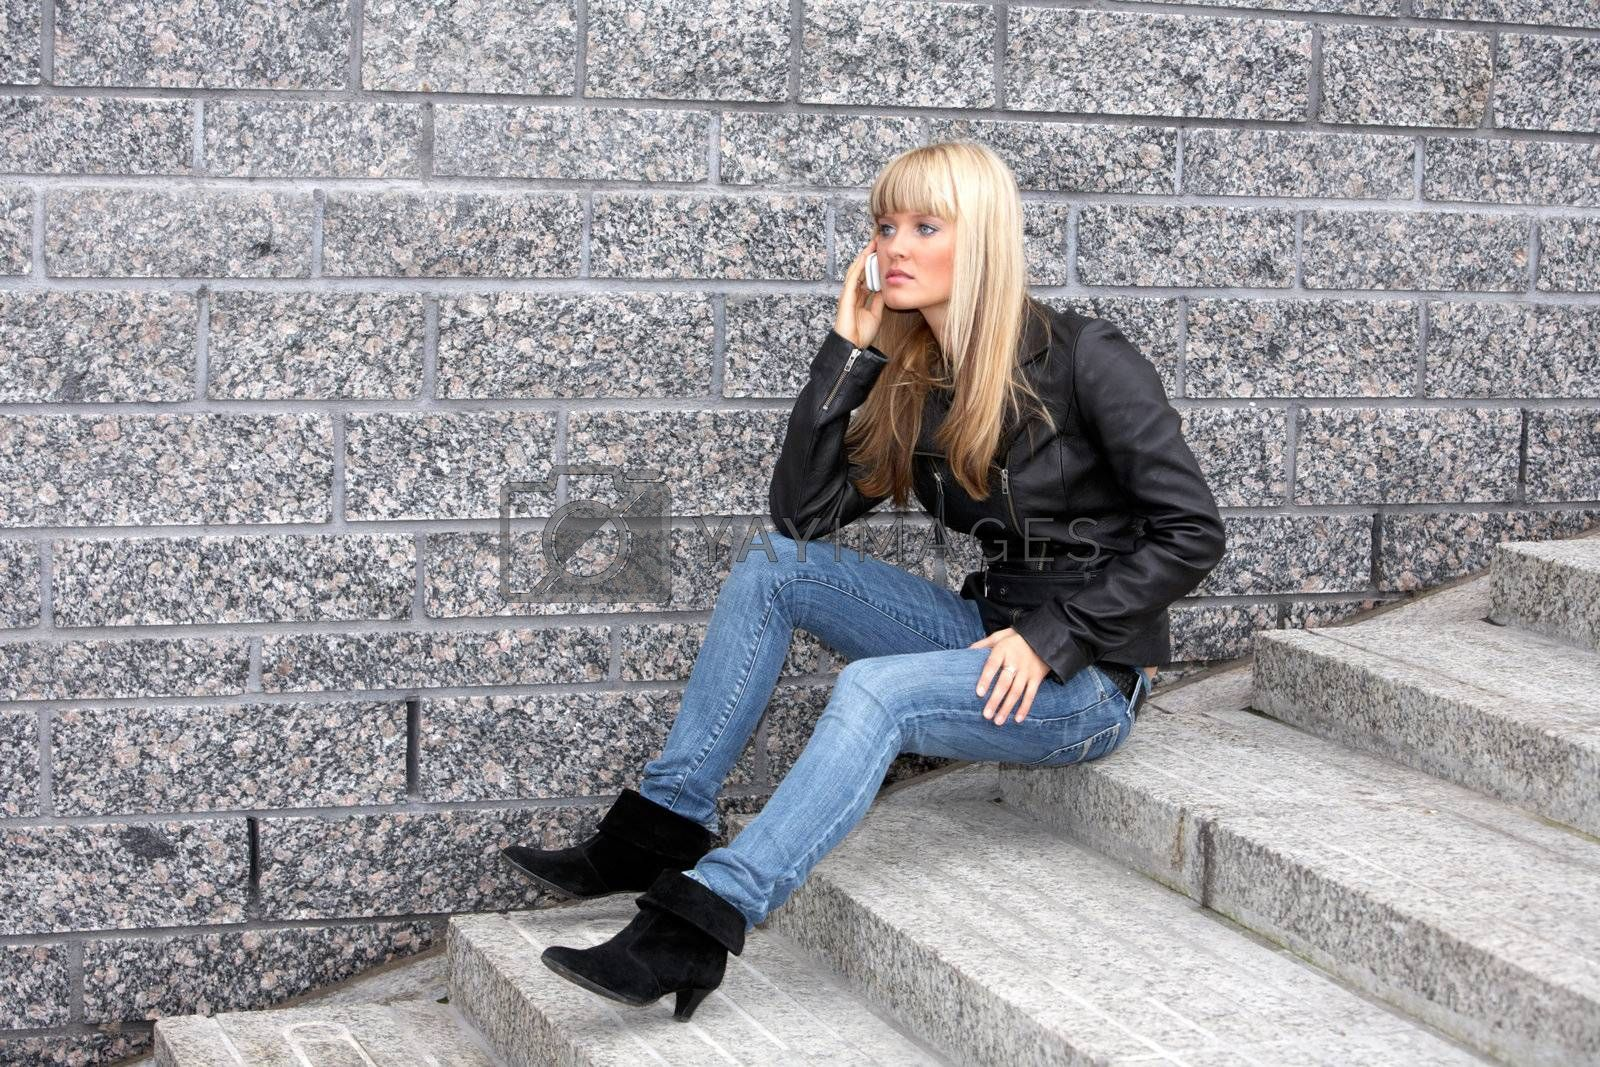 Young woman using mobile phone, sitting on stairway